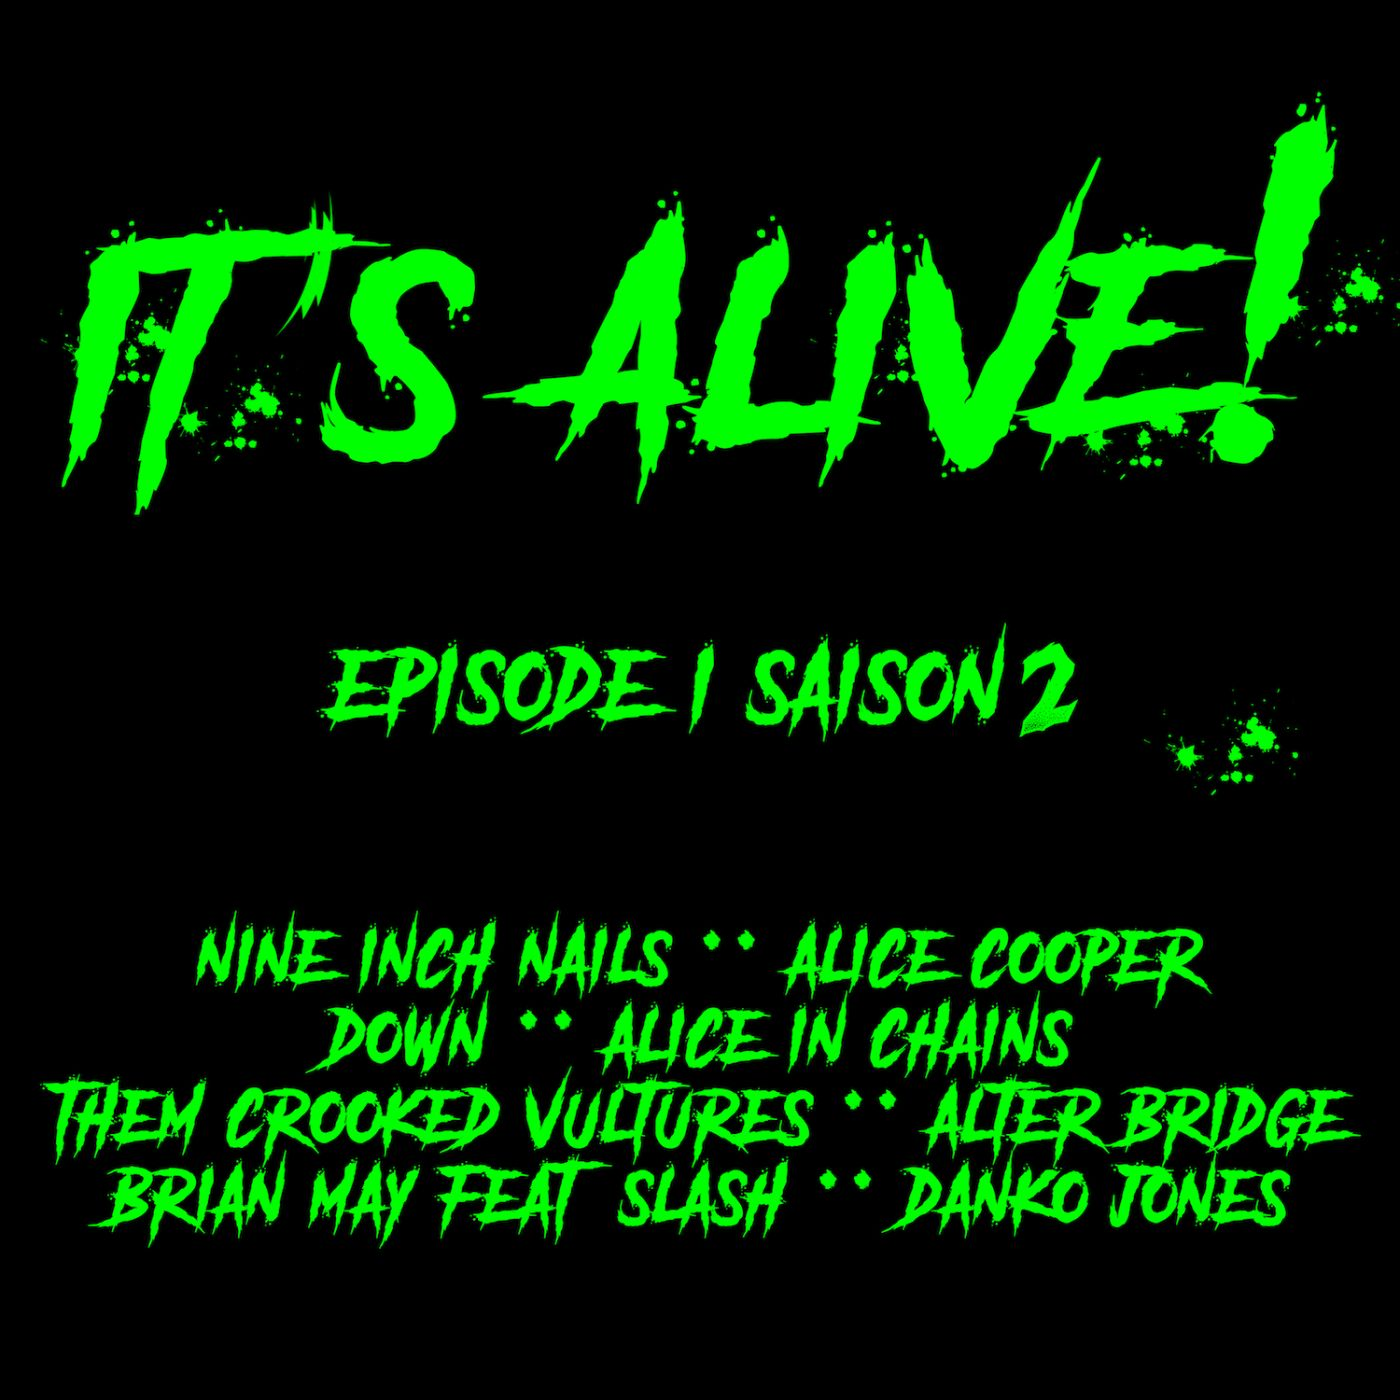 It's Alive! Episode 1 Saison 2